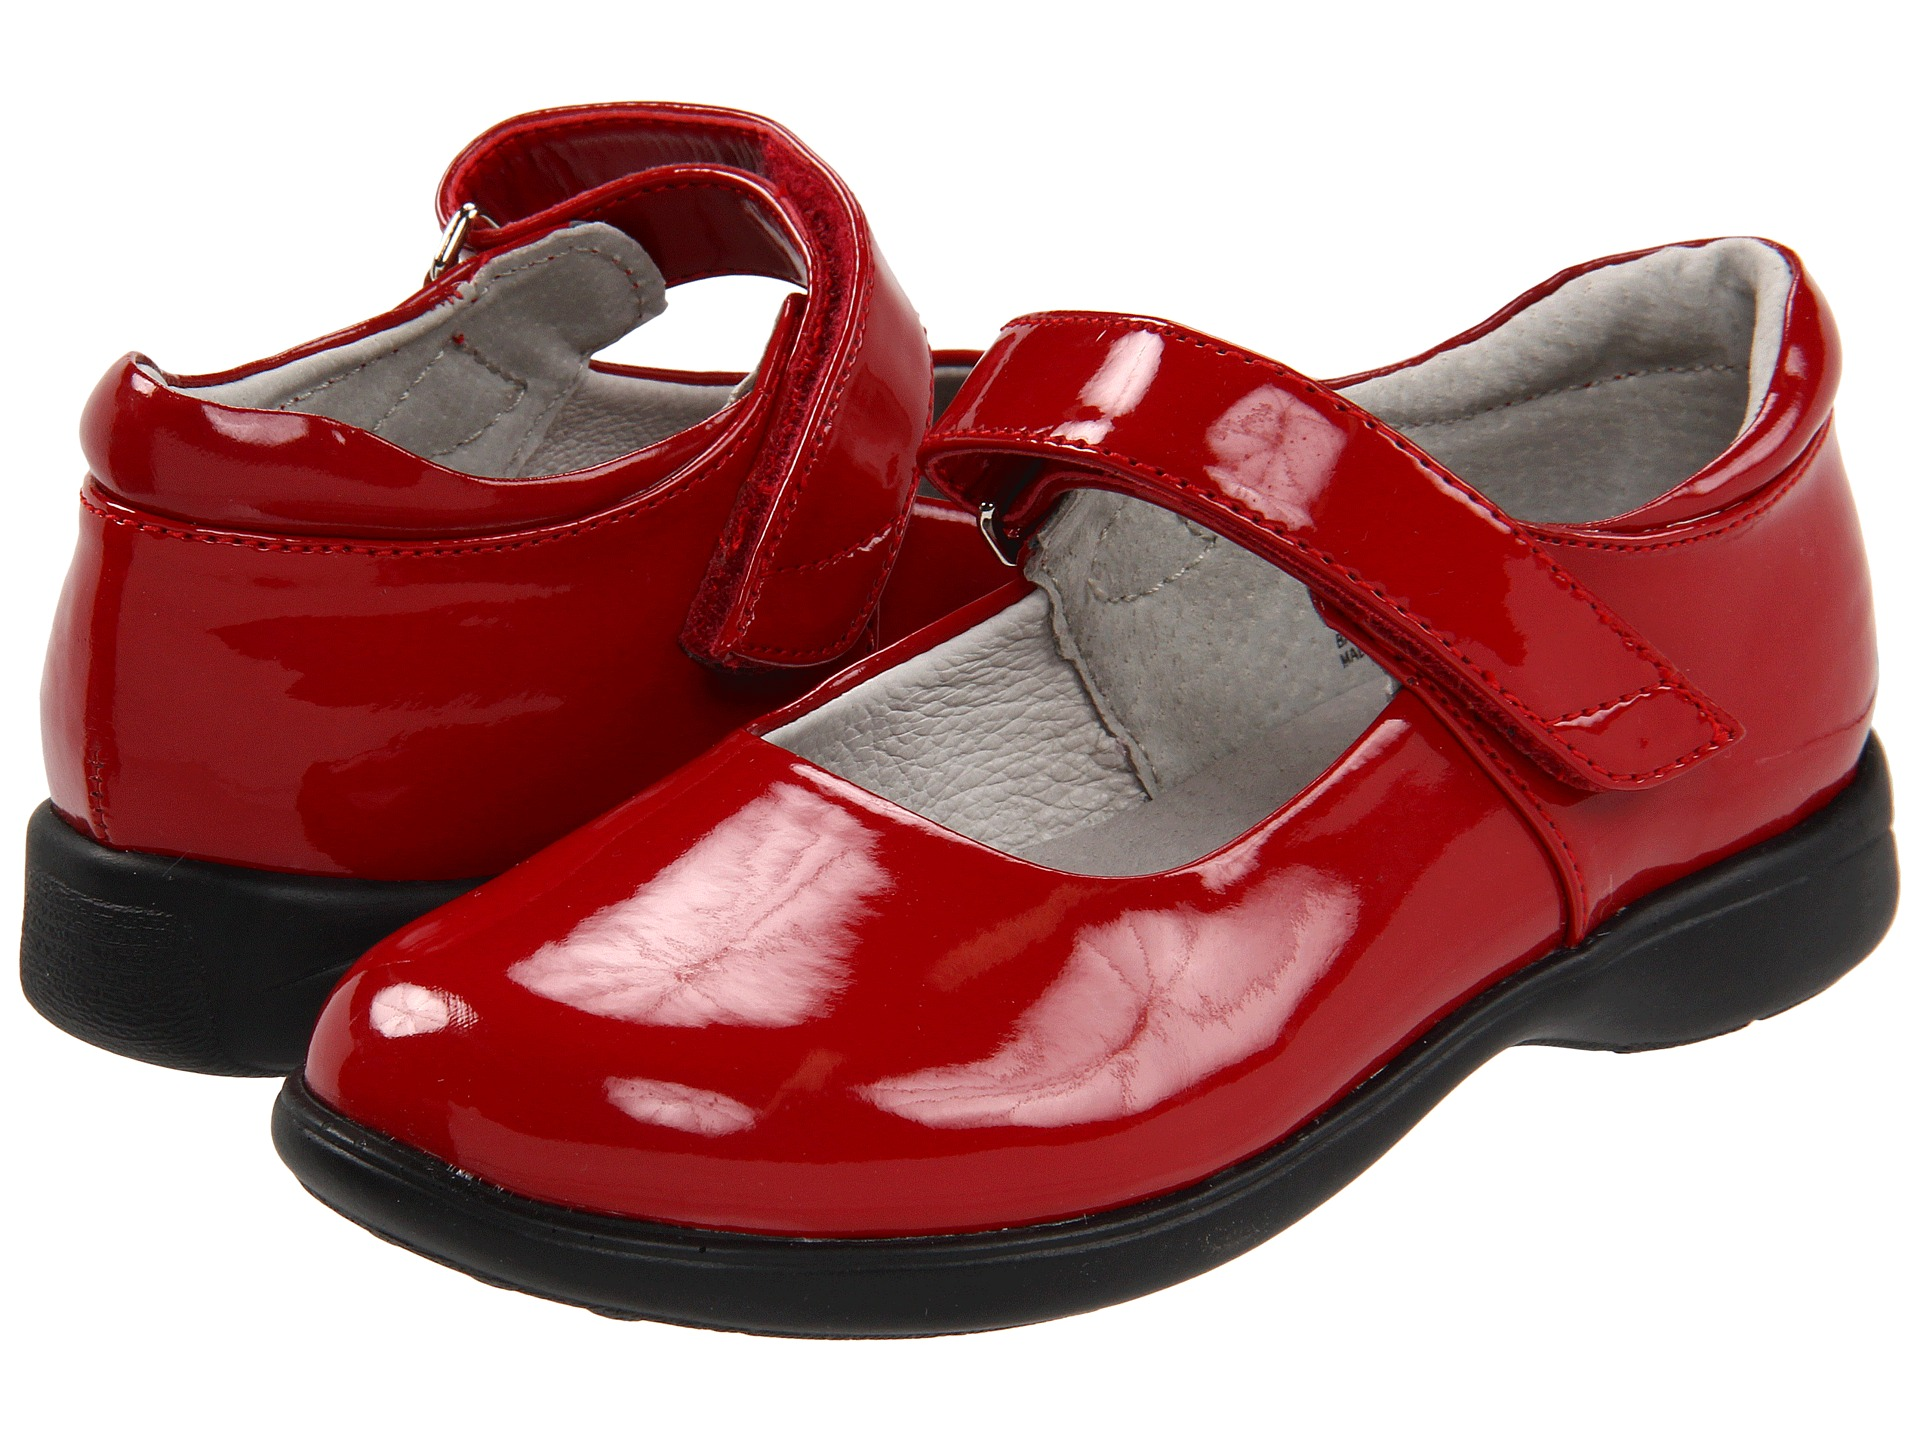 Shiny Red Toddler Shoes